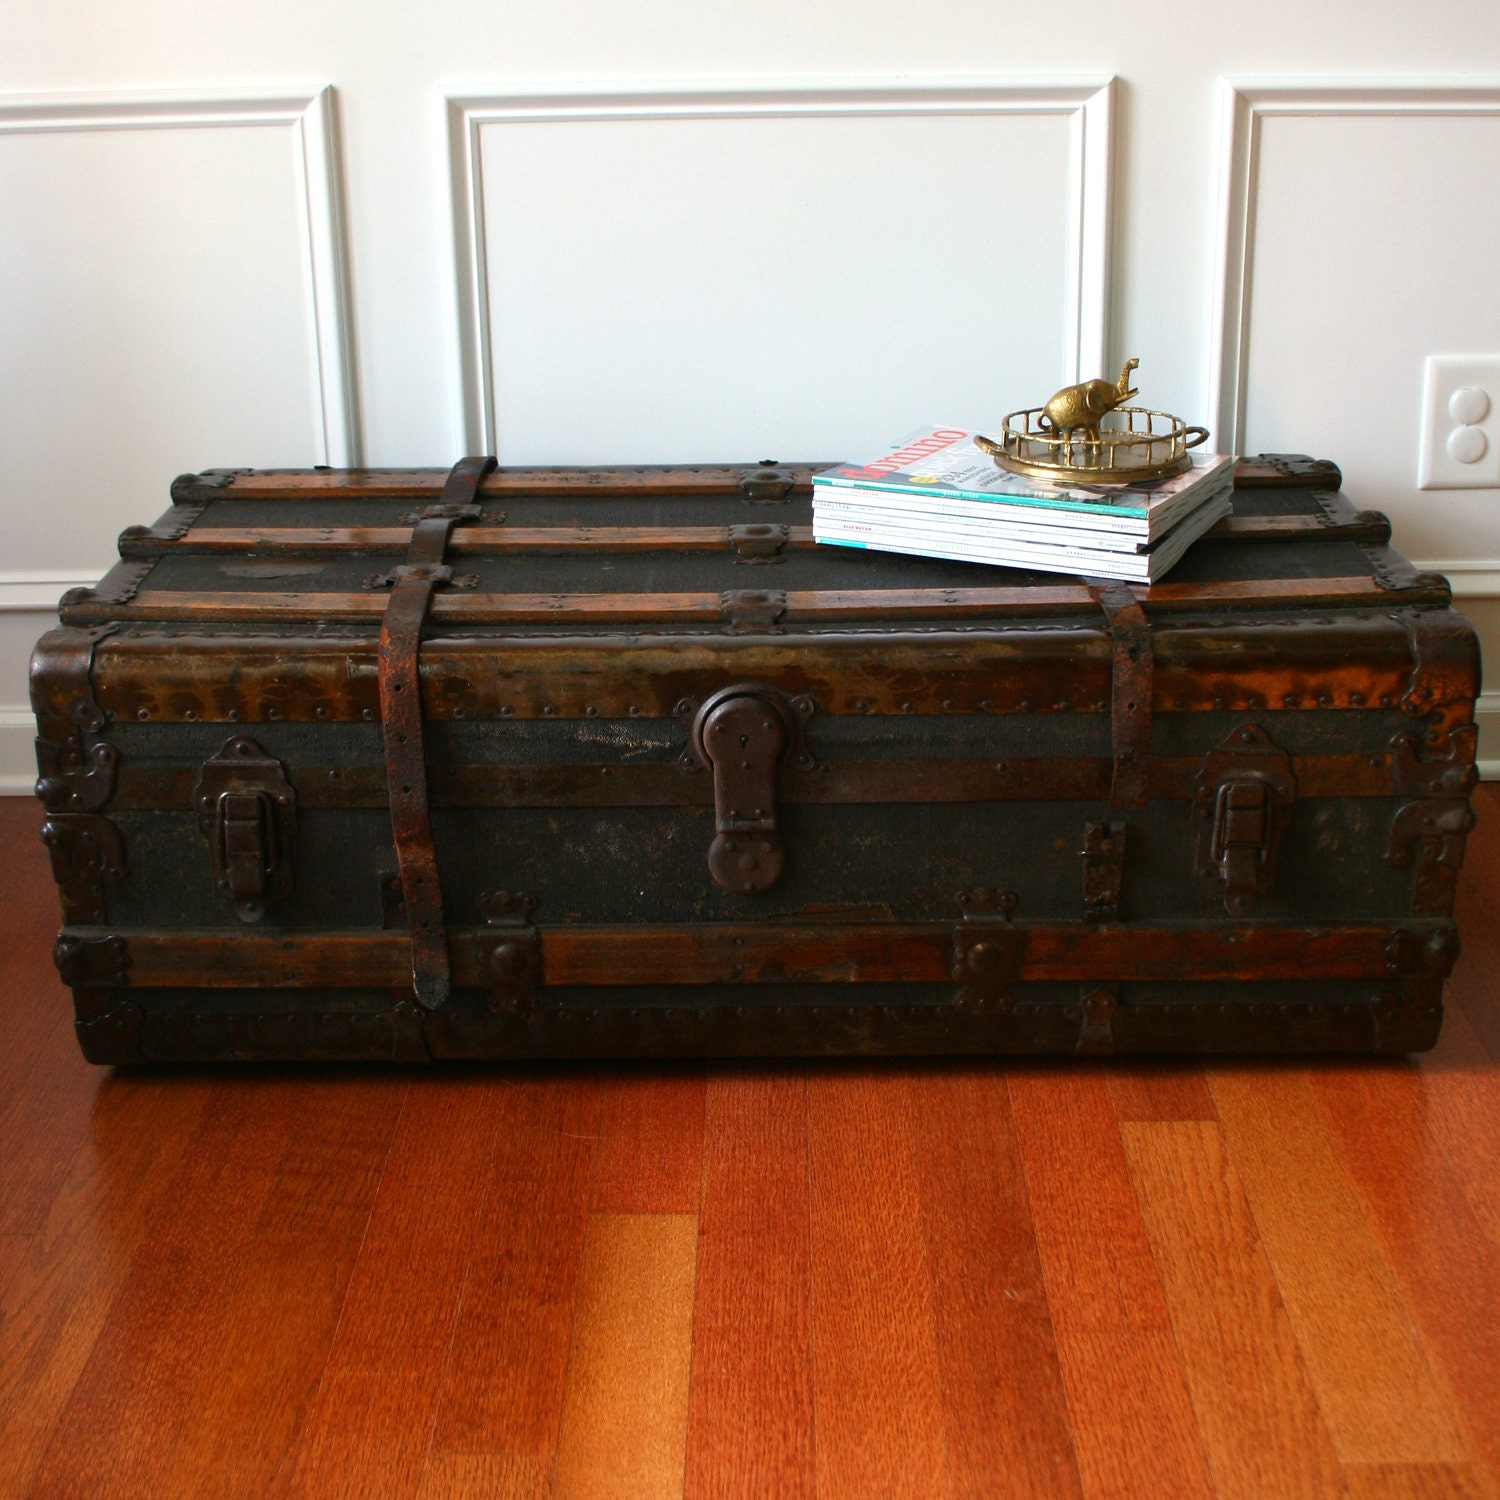 Huge antique steamer trunk coffee table flat by rhapsodyattic Old trunks as coffee tables